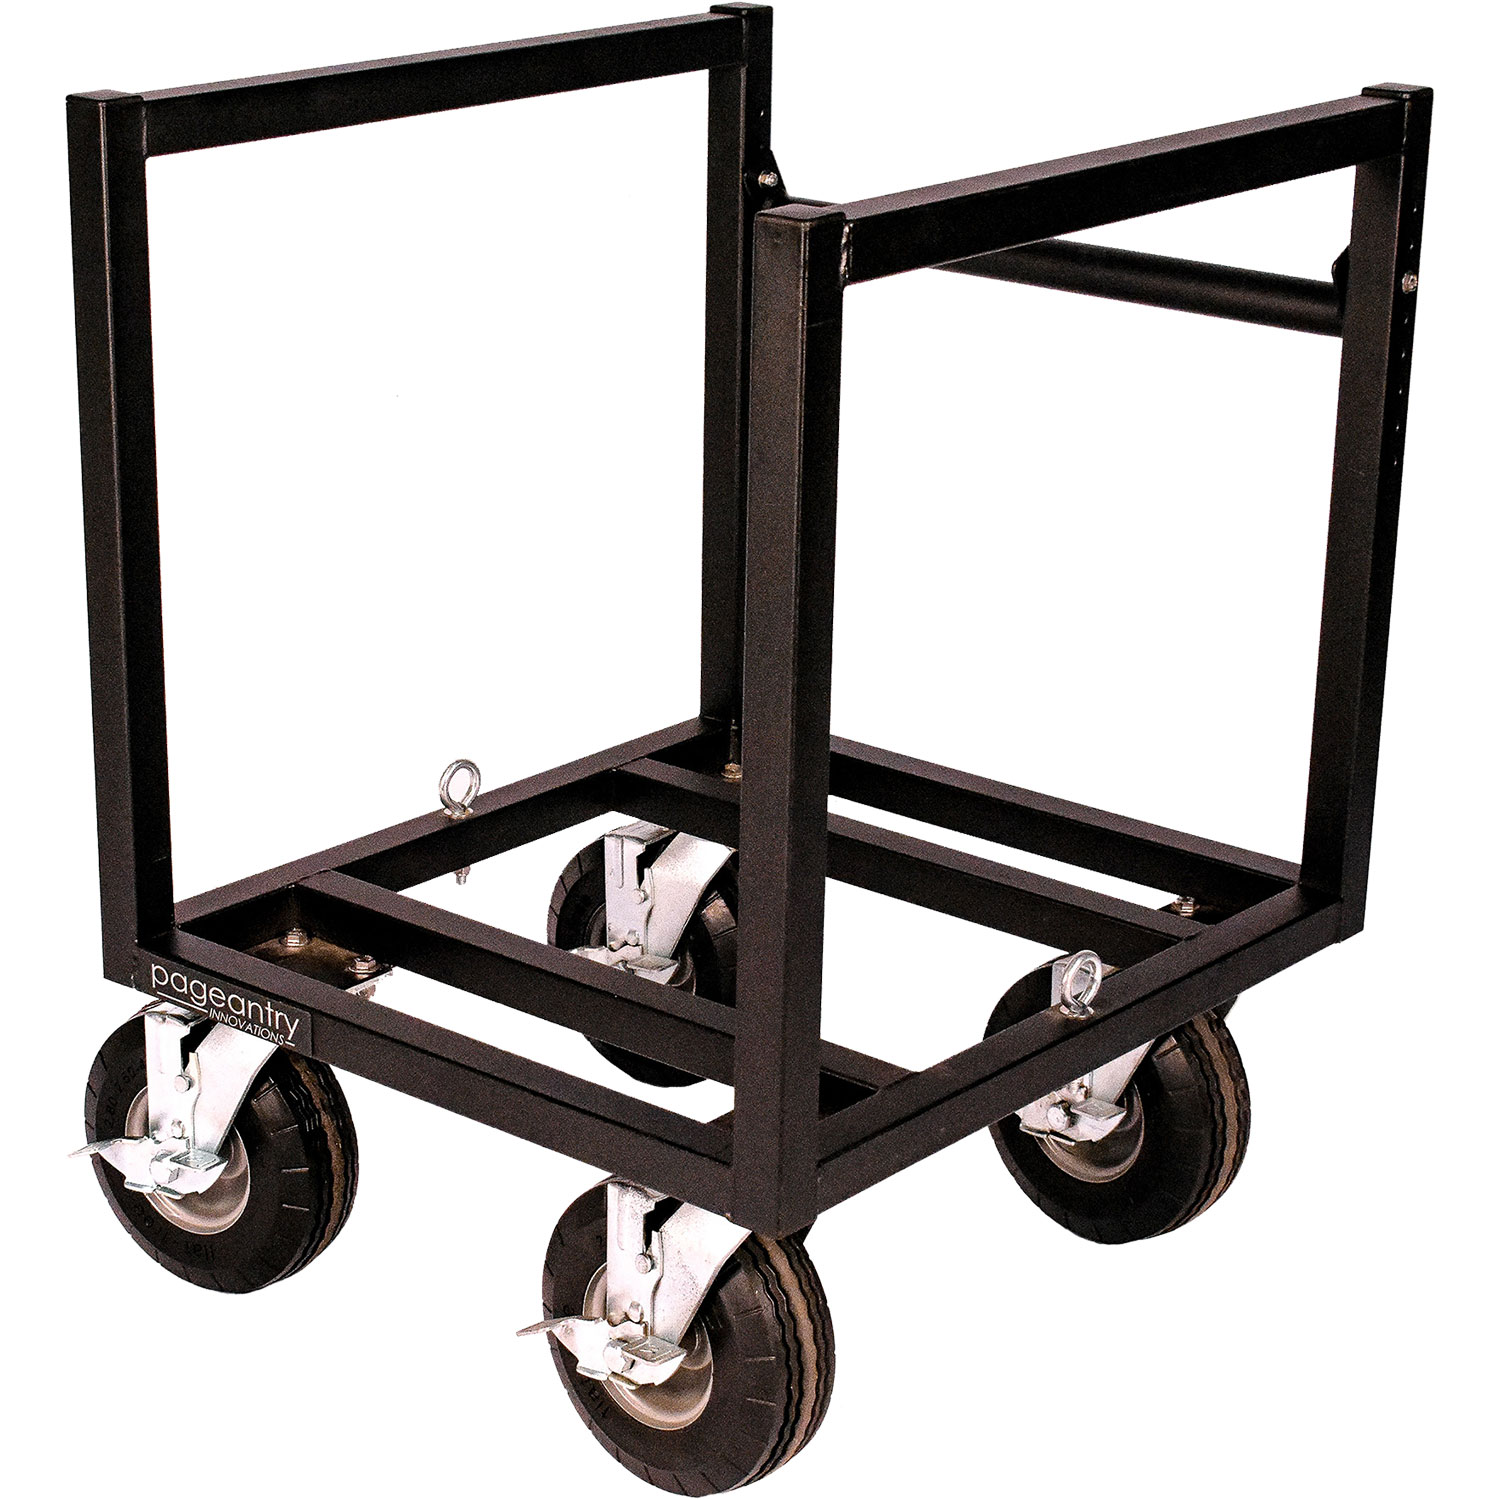 Pageantry Innovations SC-30 Full Range Speaker Cart